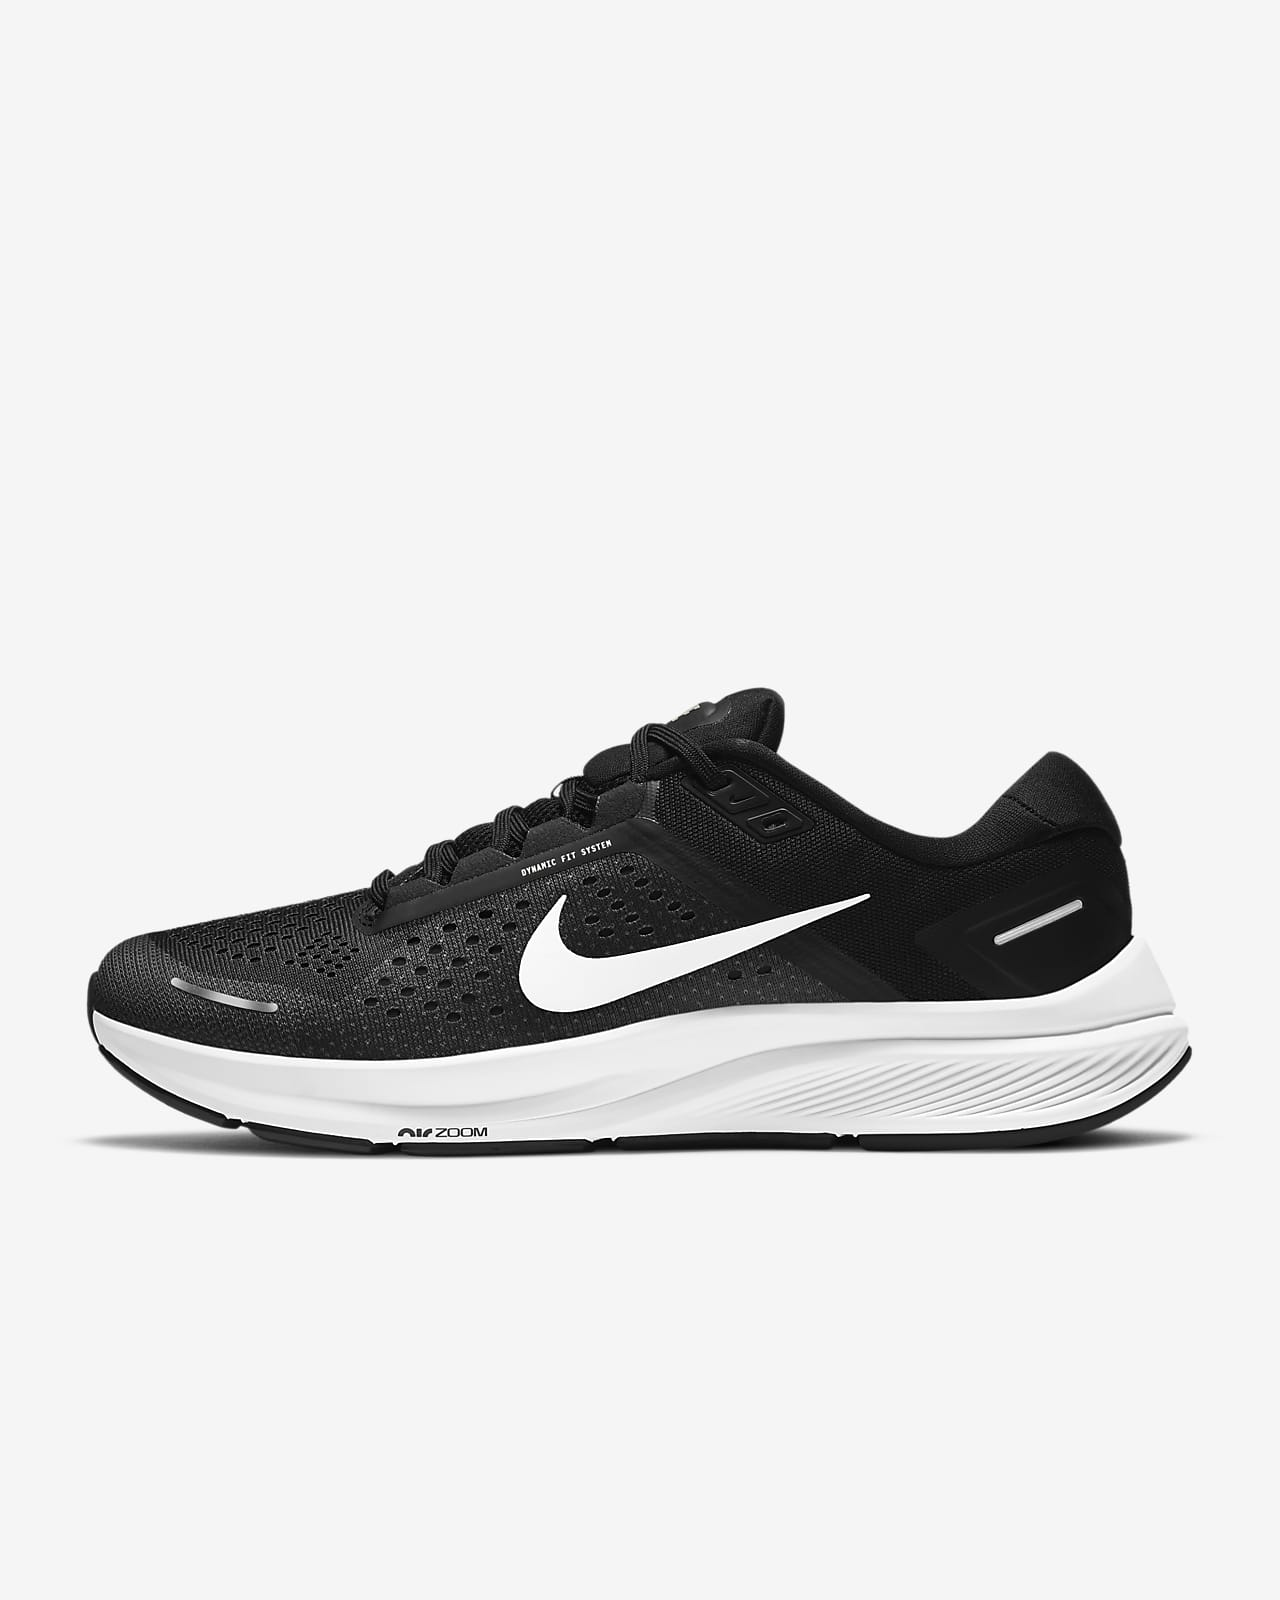 Nike Air Zoom Structure 23 男款跑鞋